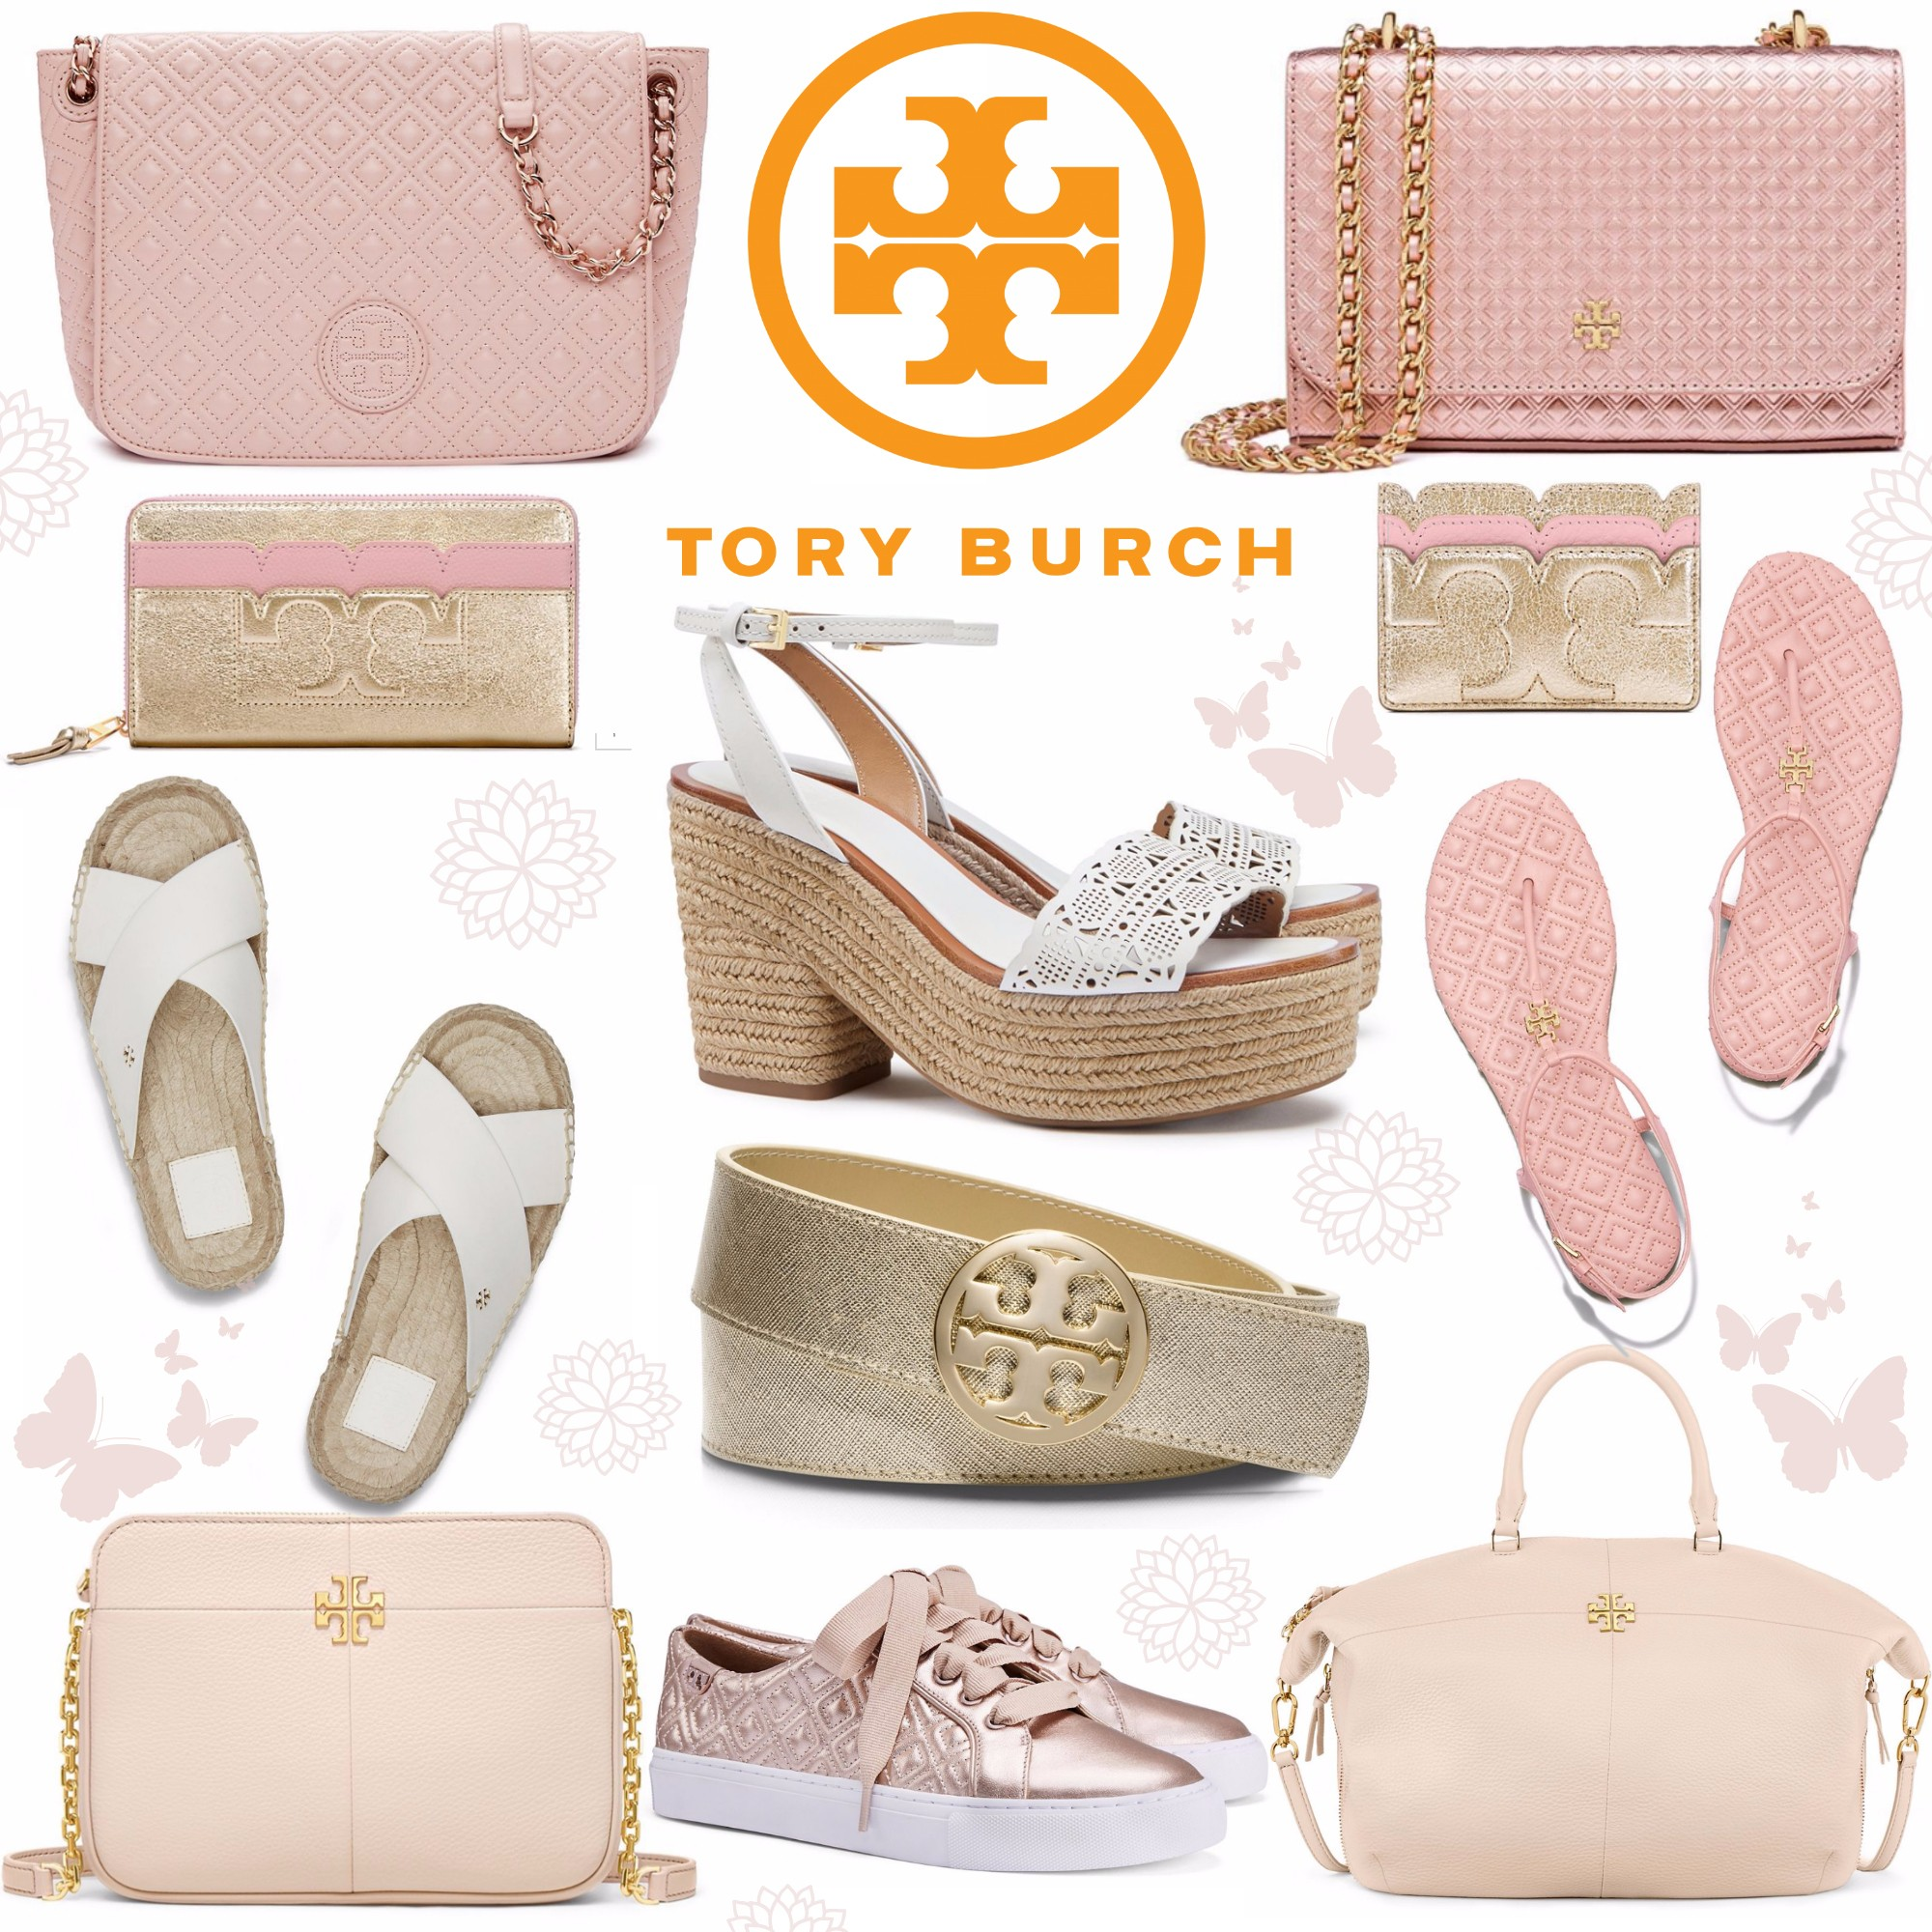 37386a8a8711 Tory Burch Private Sale (up to 70% off) – Styled Adventures